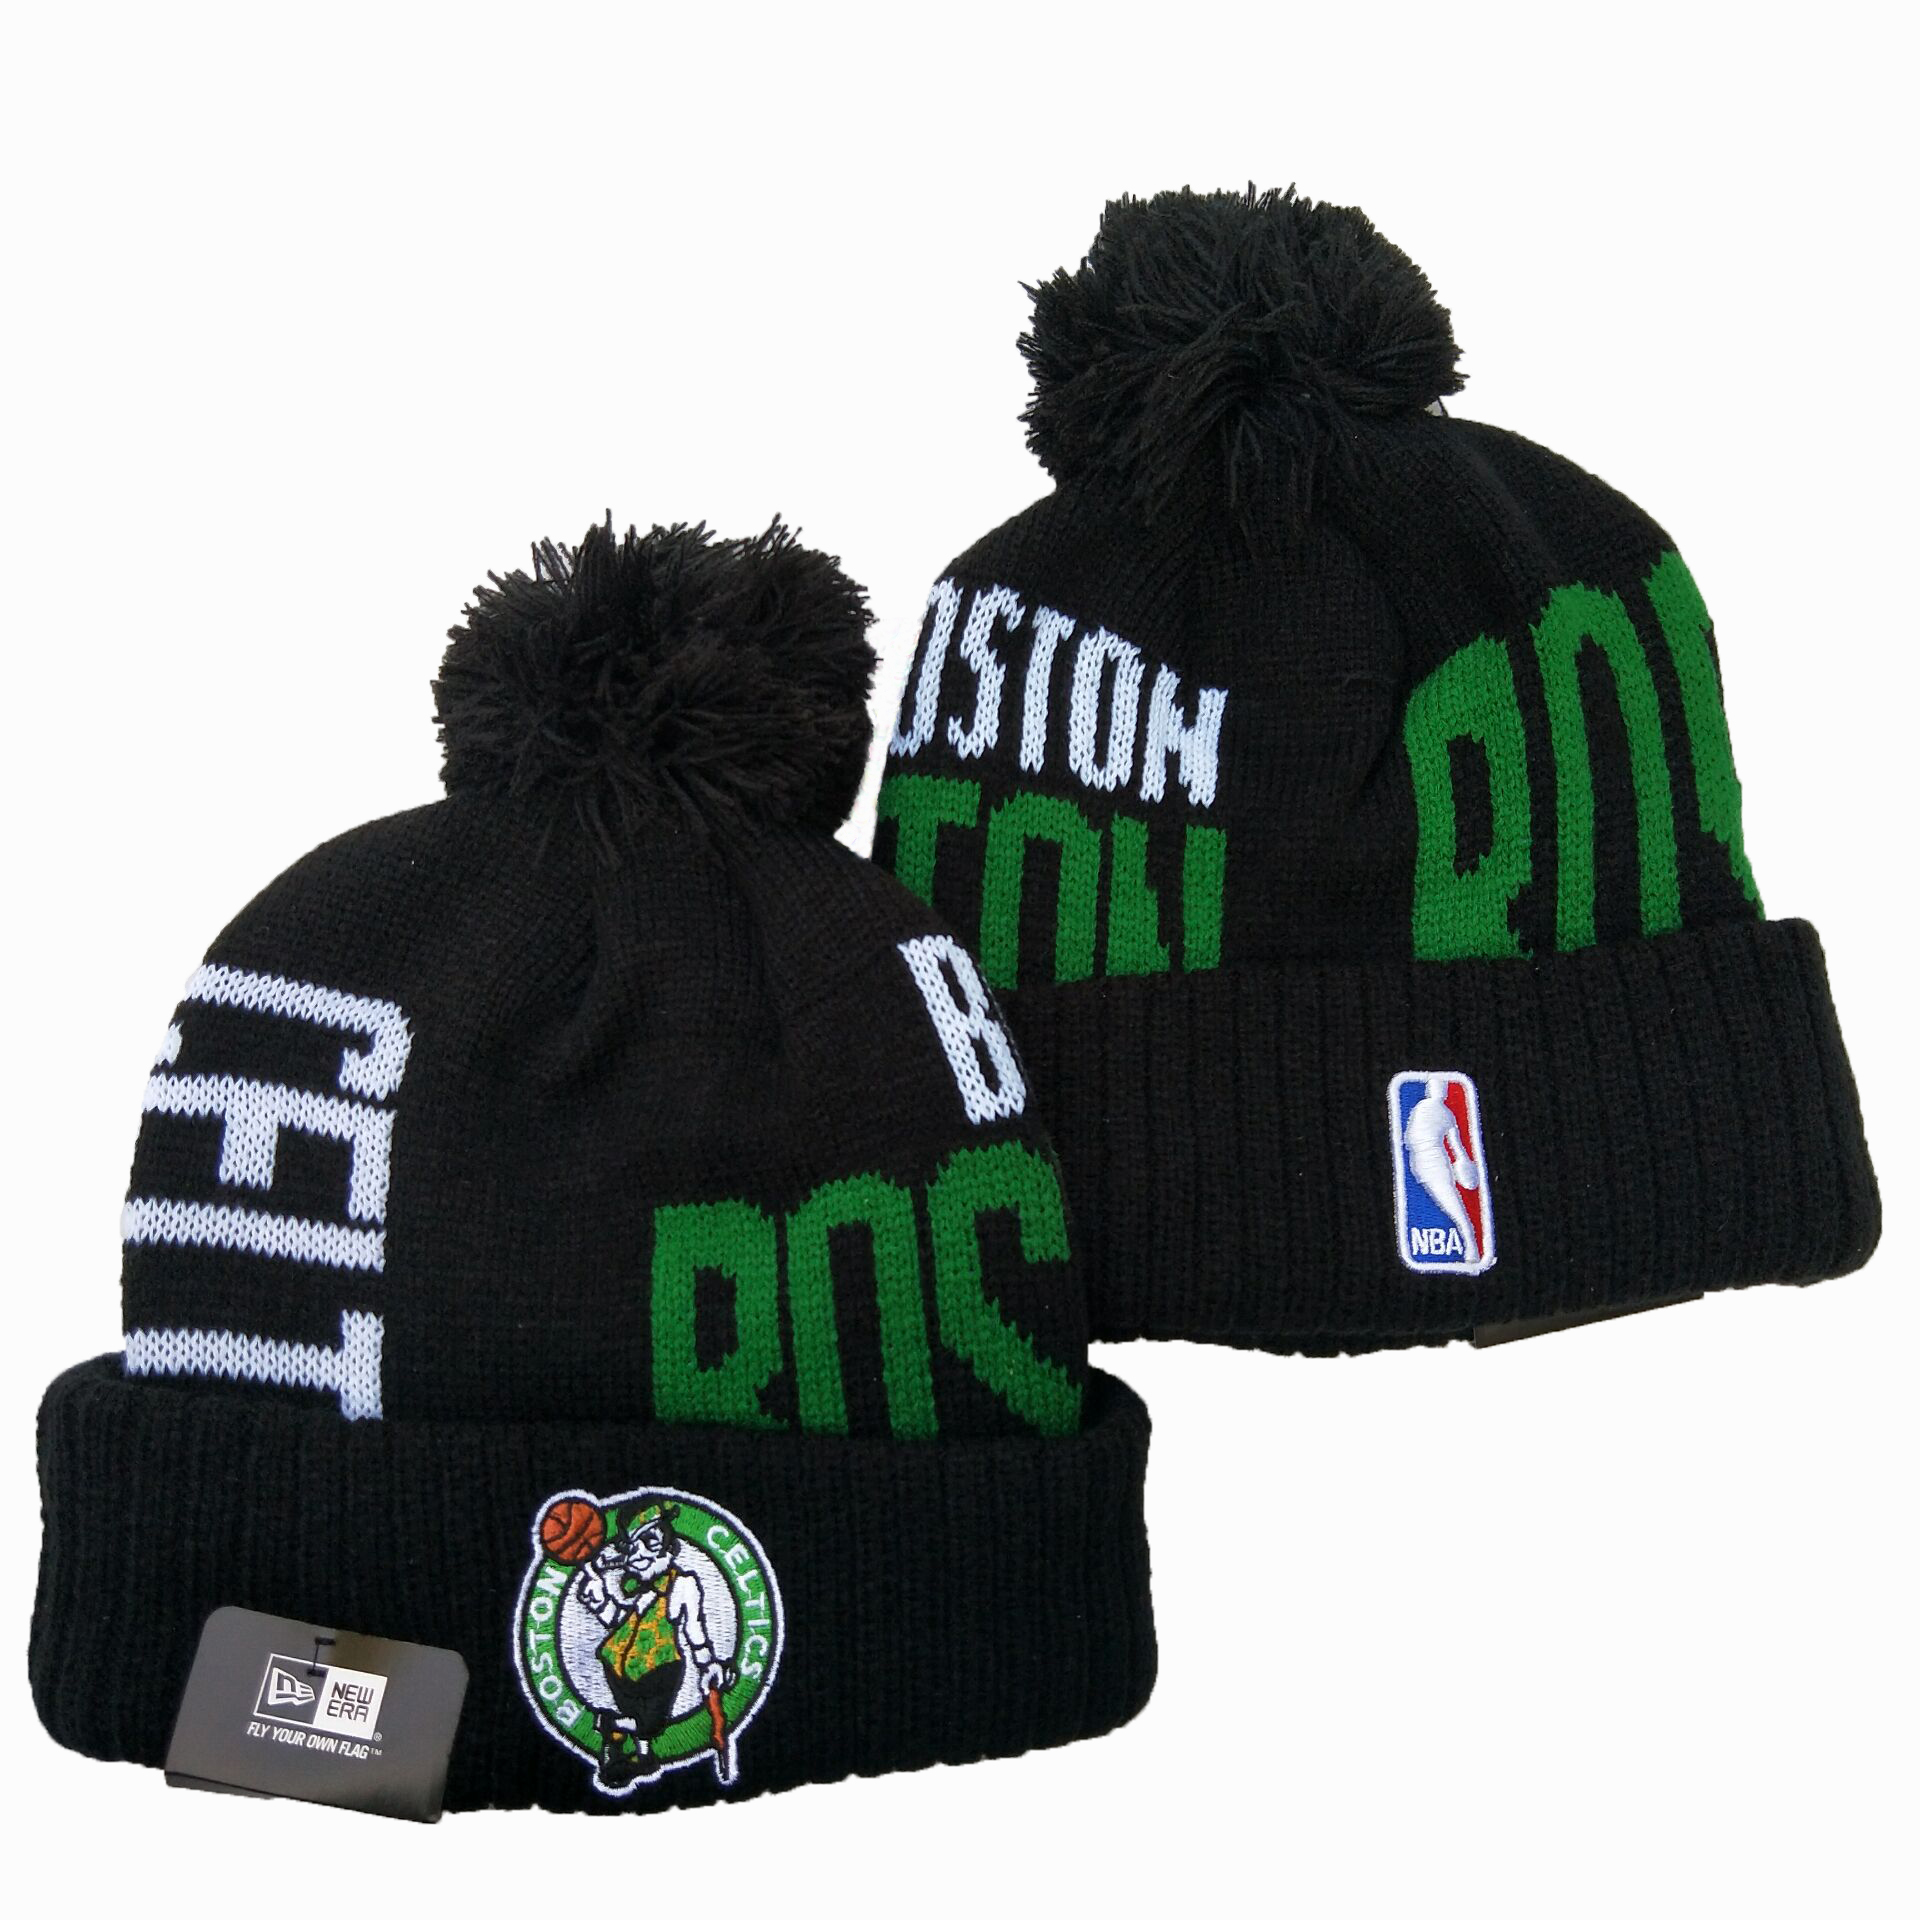 Celtics Team Logo Black Wordmark Cuffed Pom Knit Hat YD